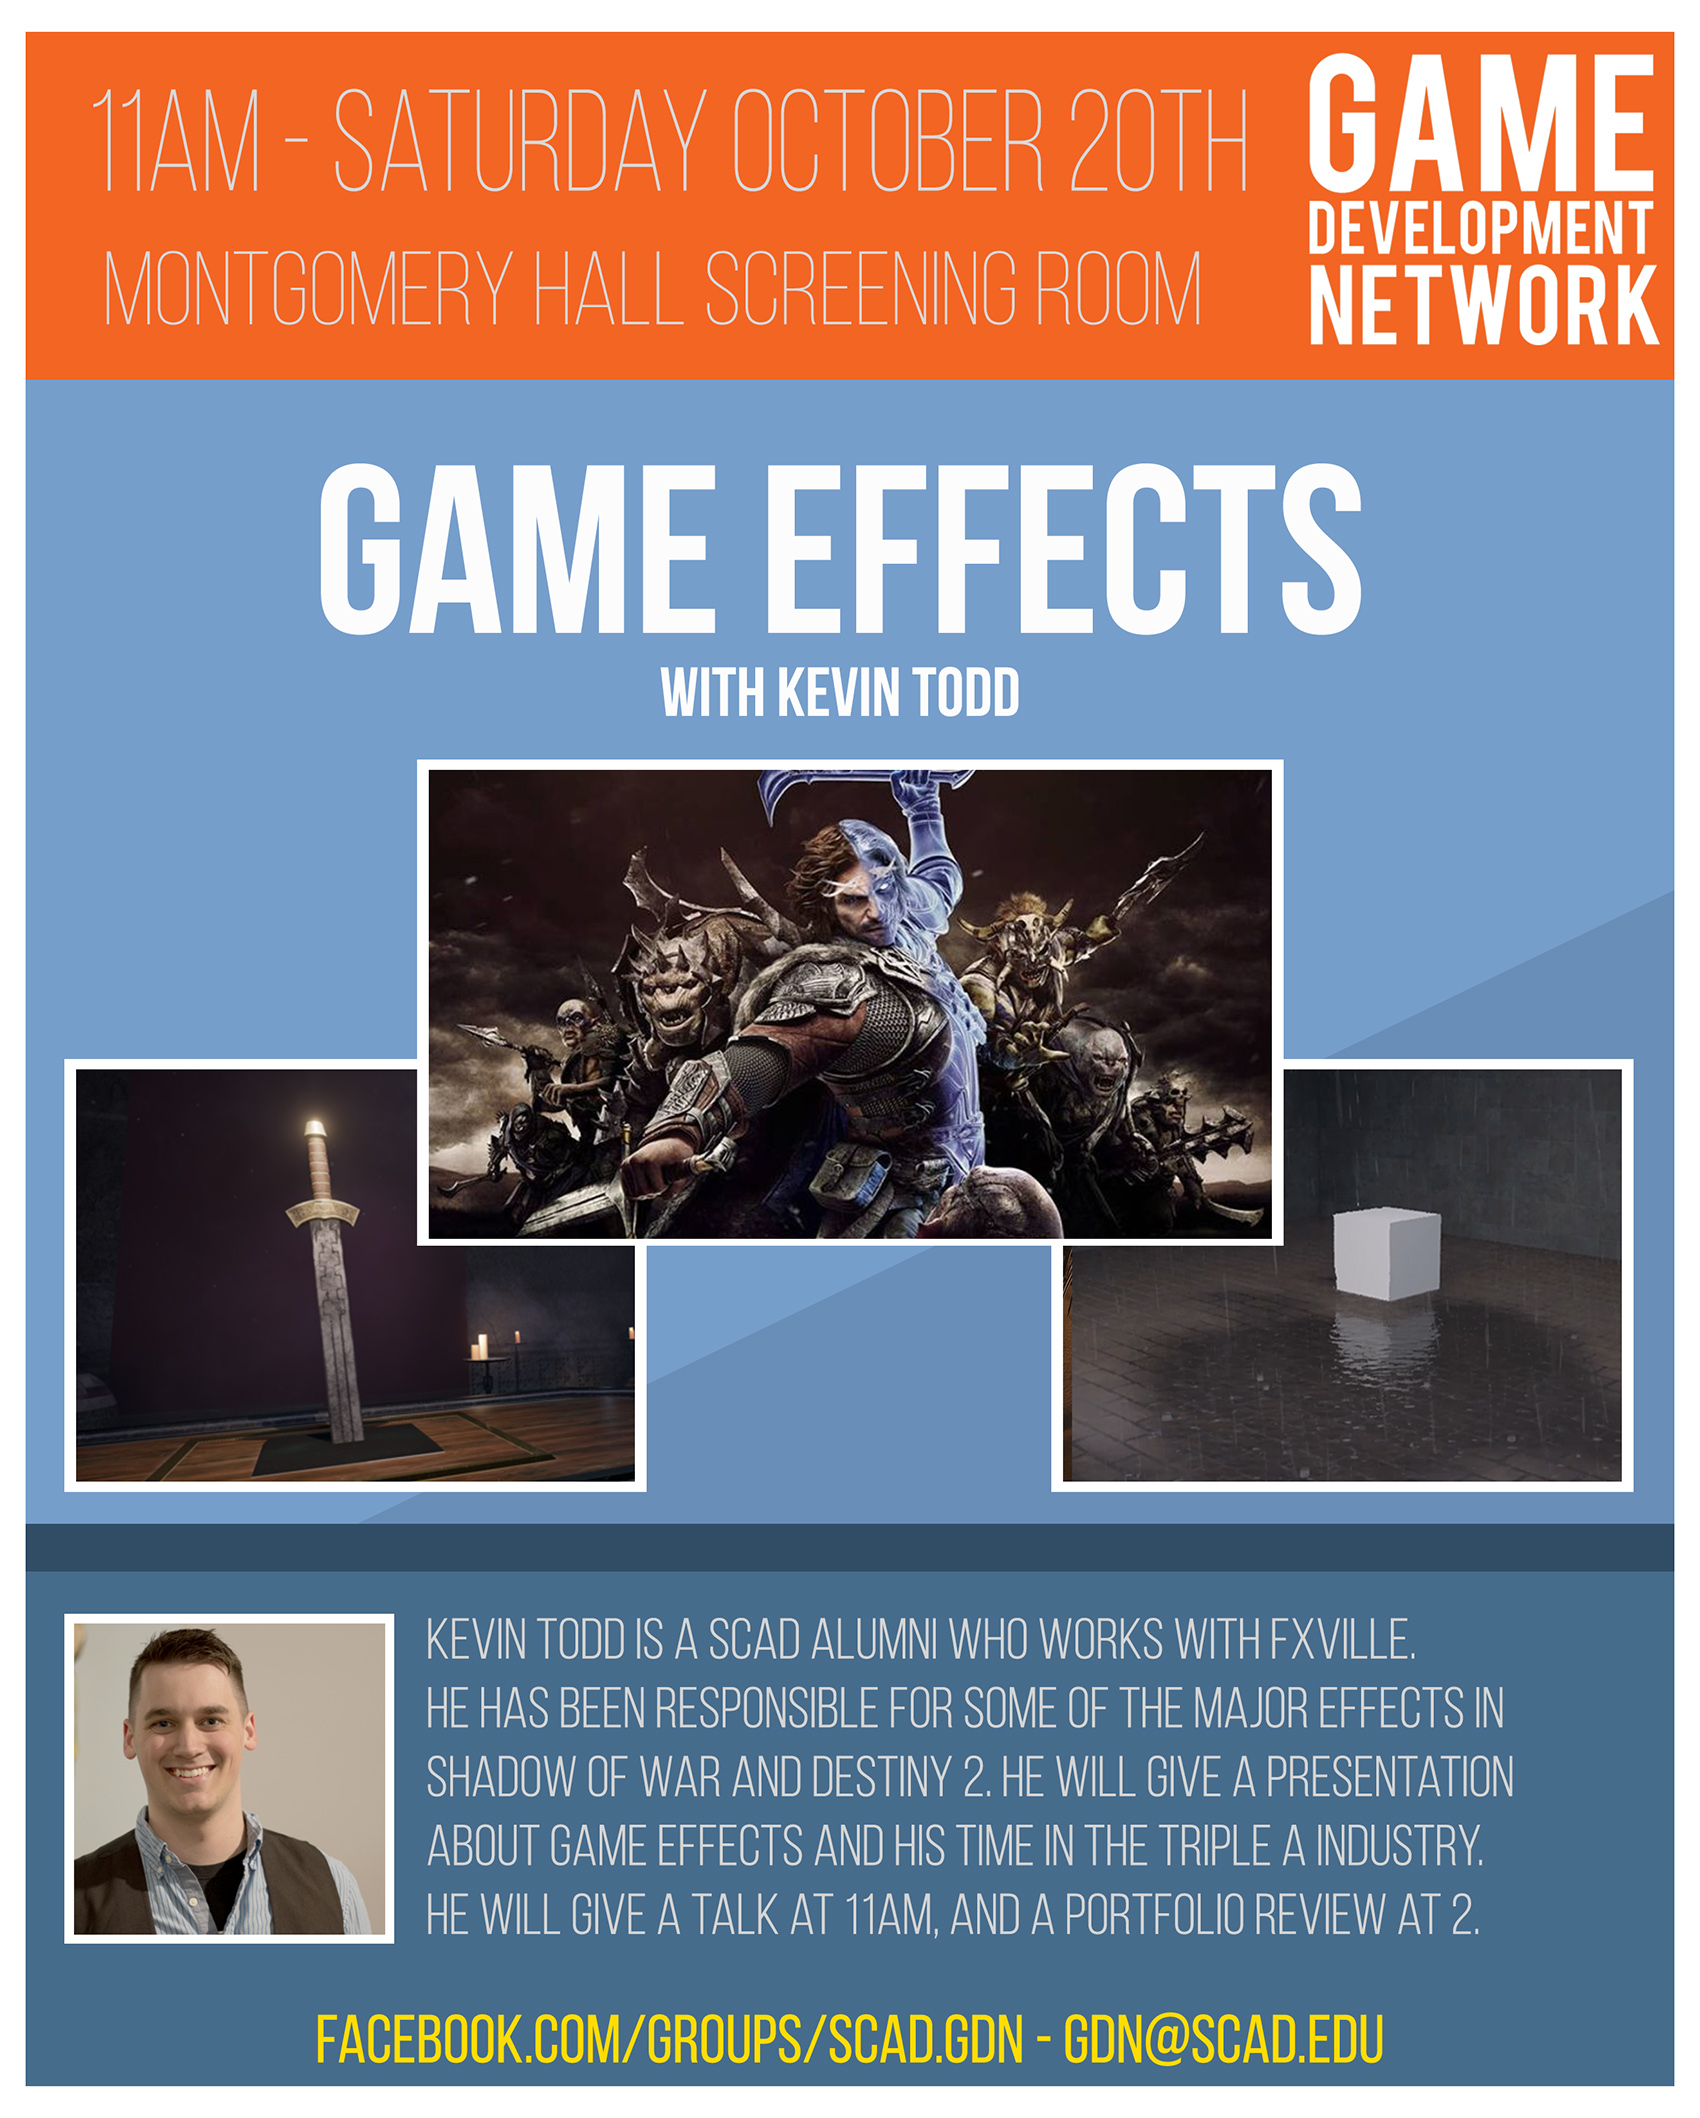 Game Development Network – Game Effects with Kevin Todd